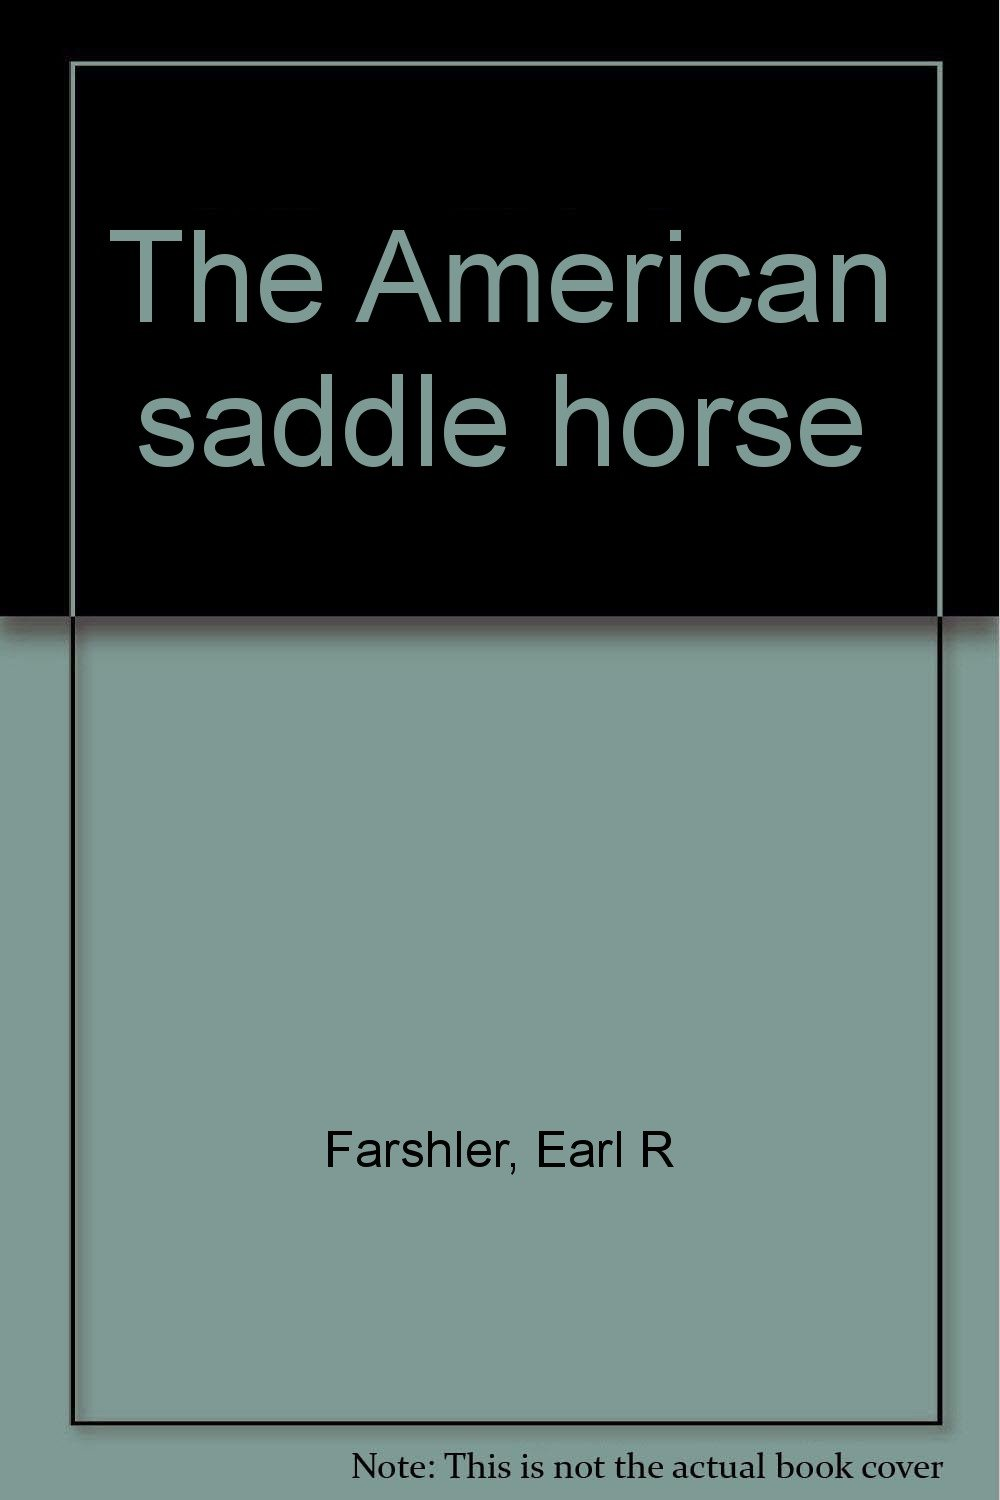 The American saddle horse